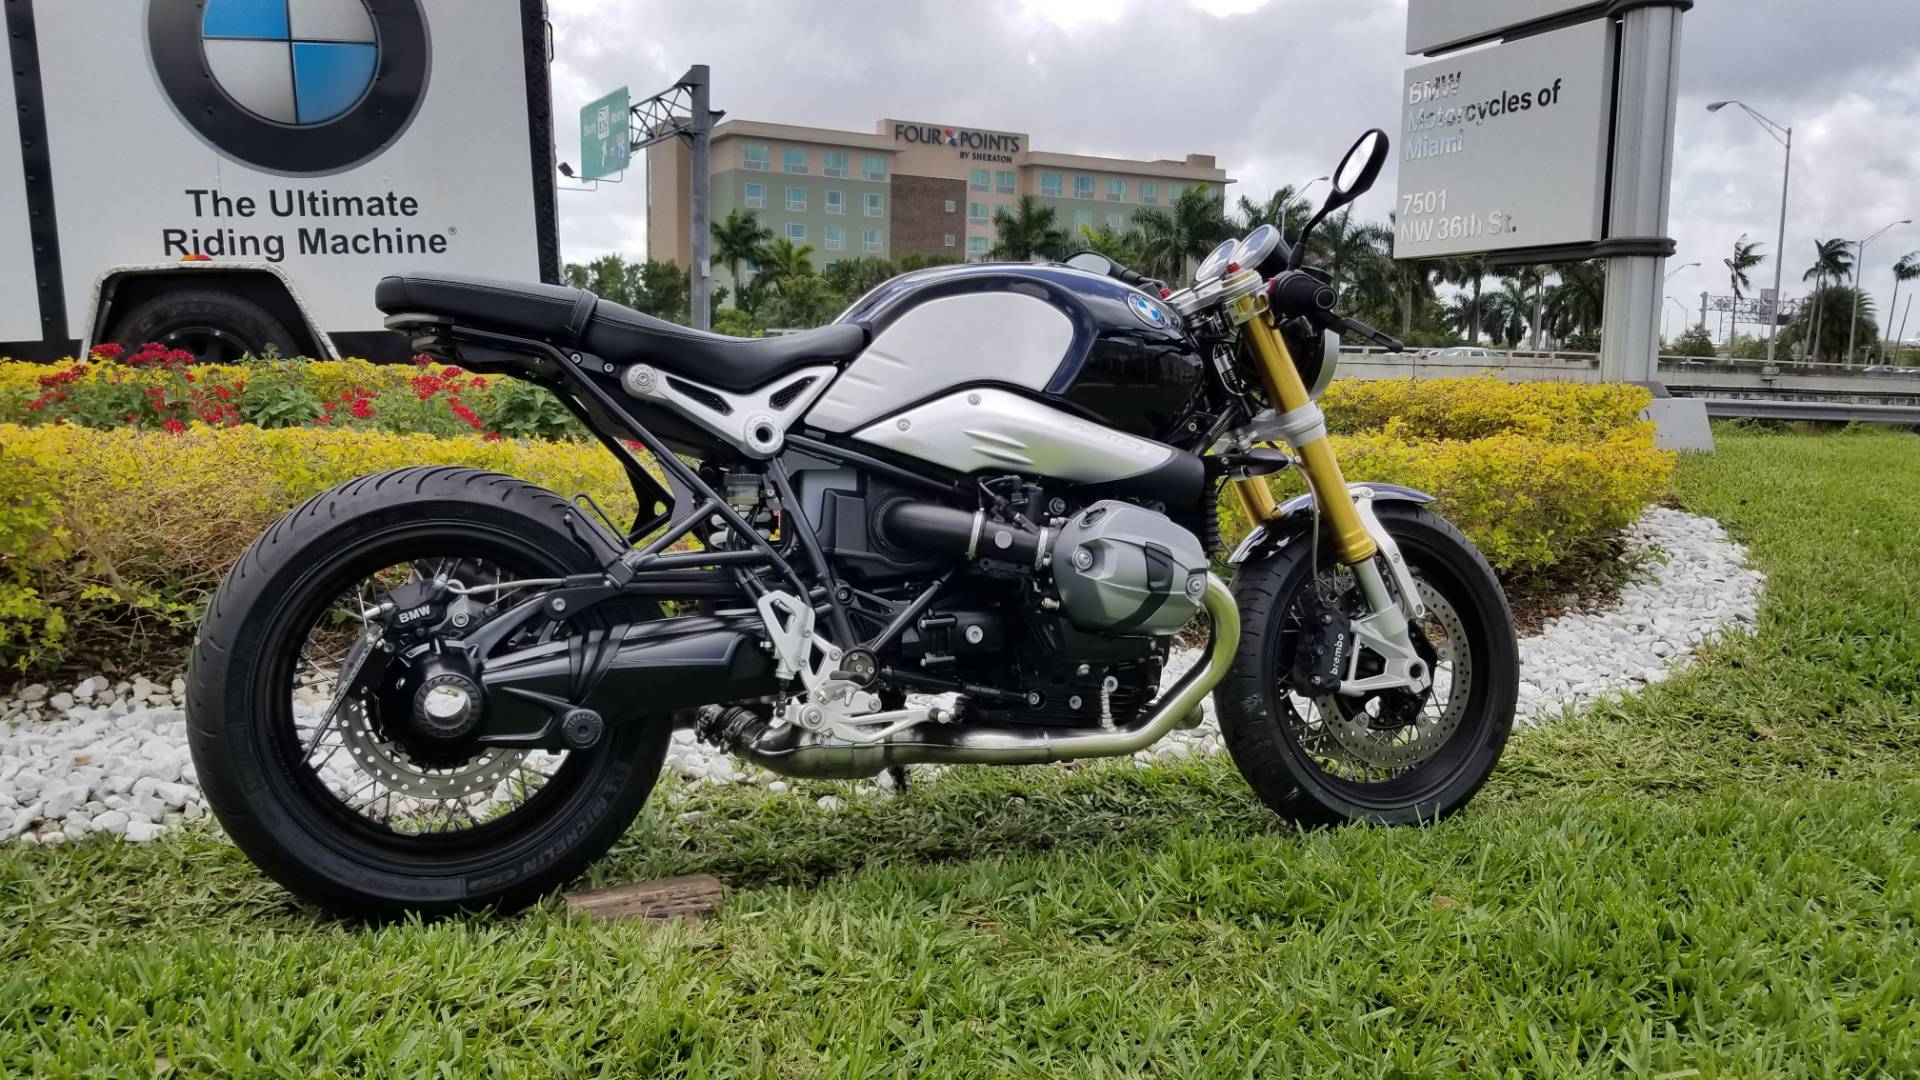 Used 2017 BMW R nine T For Sale, Pre owned BMW R nineT For Sale, BMW Motorcycle RnineT, BMW Motorcycles of Miami, Motorcycles of Miami, Motorcycles Miami - Photo 23